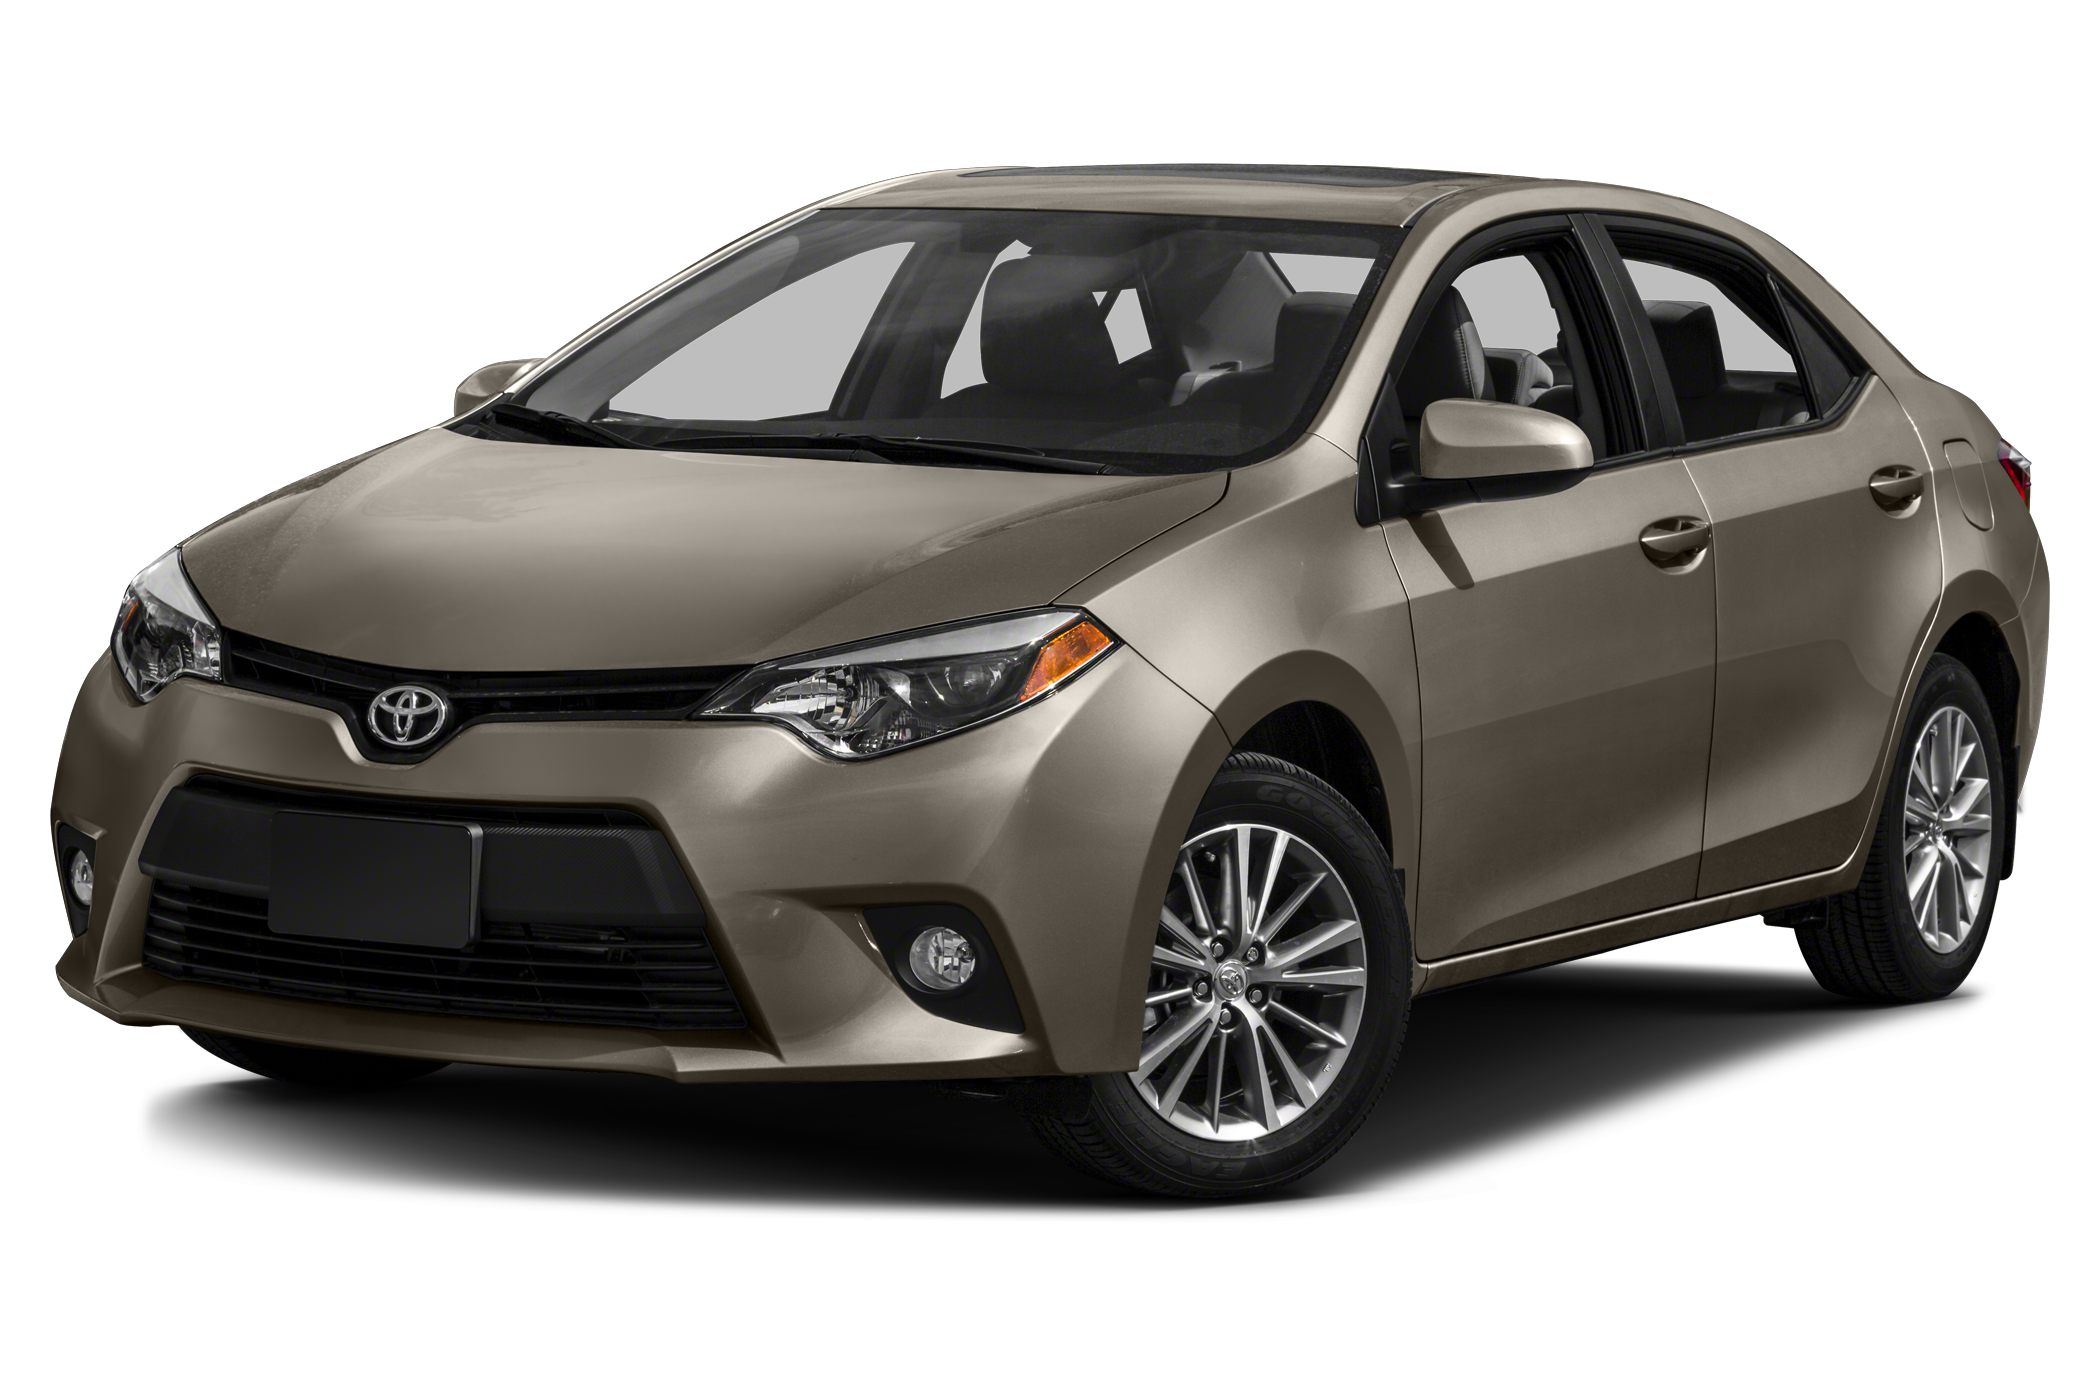 2014 Toyota Corolla LE Premium Sedan for sale in Tulsa for $18,991 with 8,167 miles.